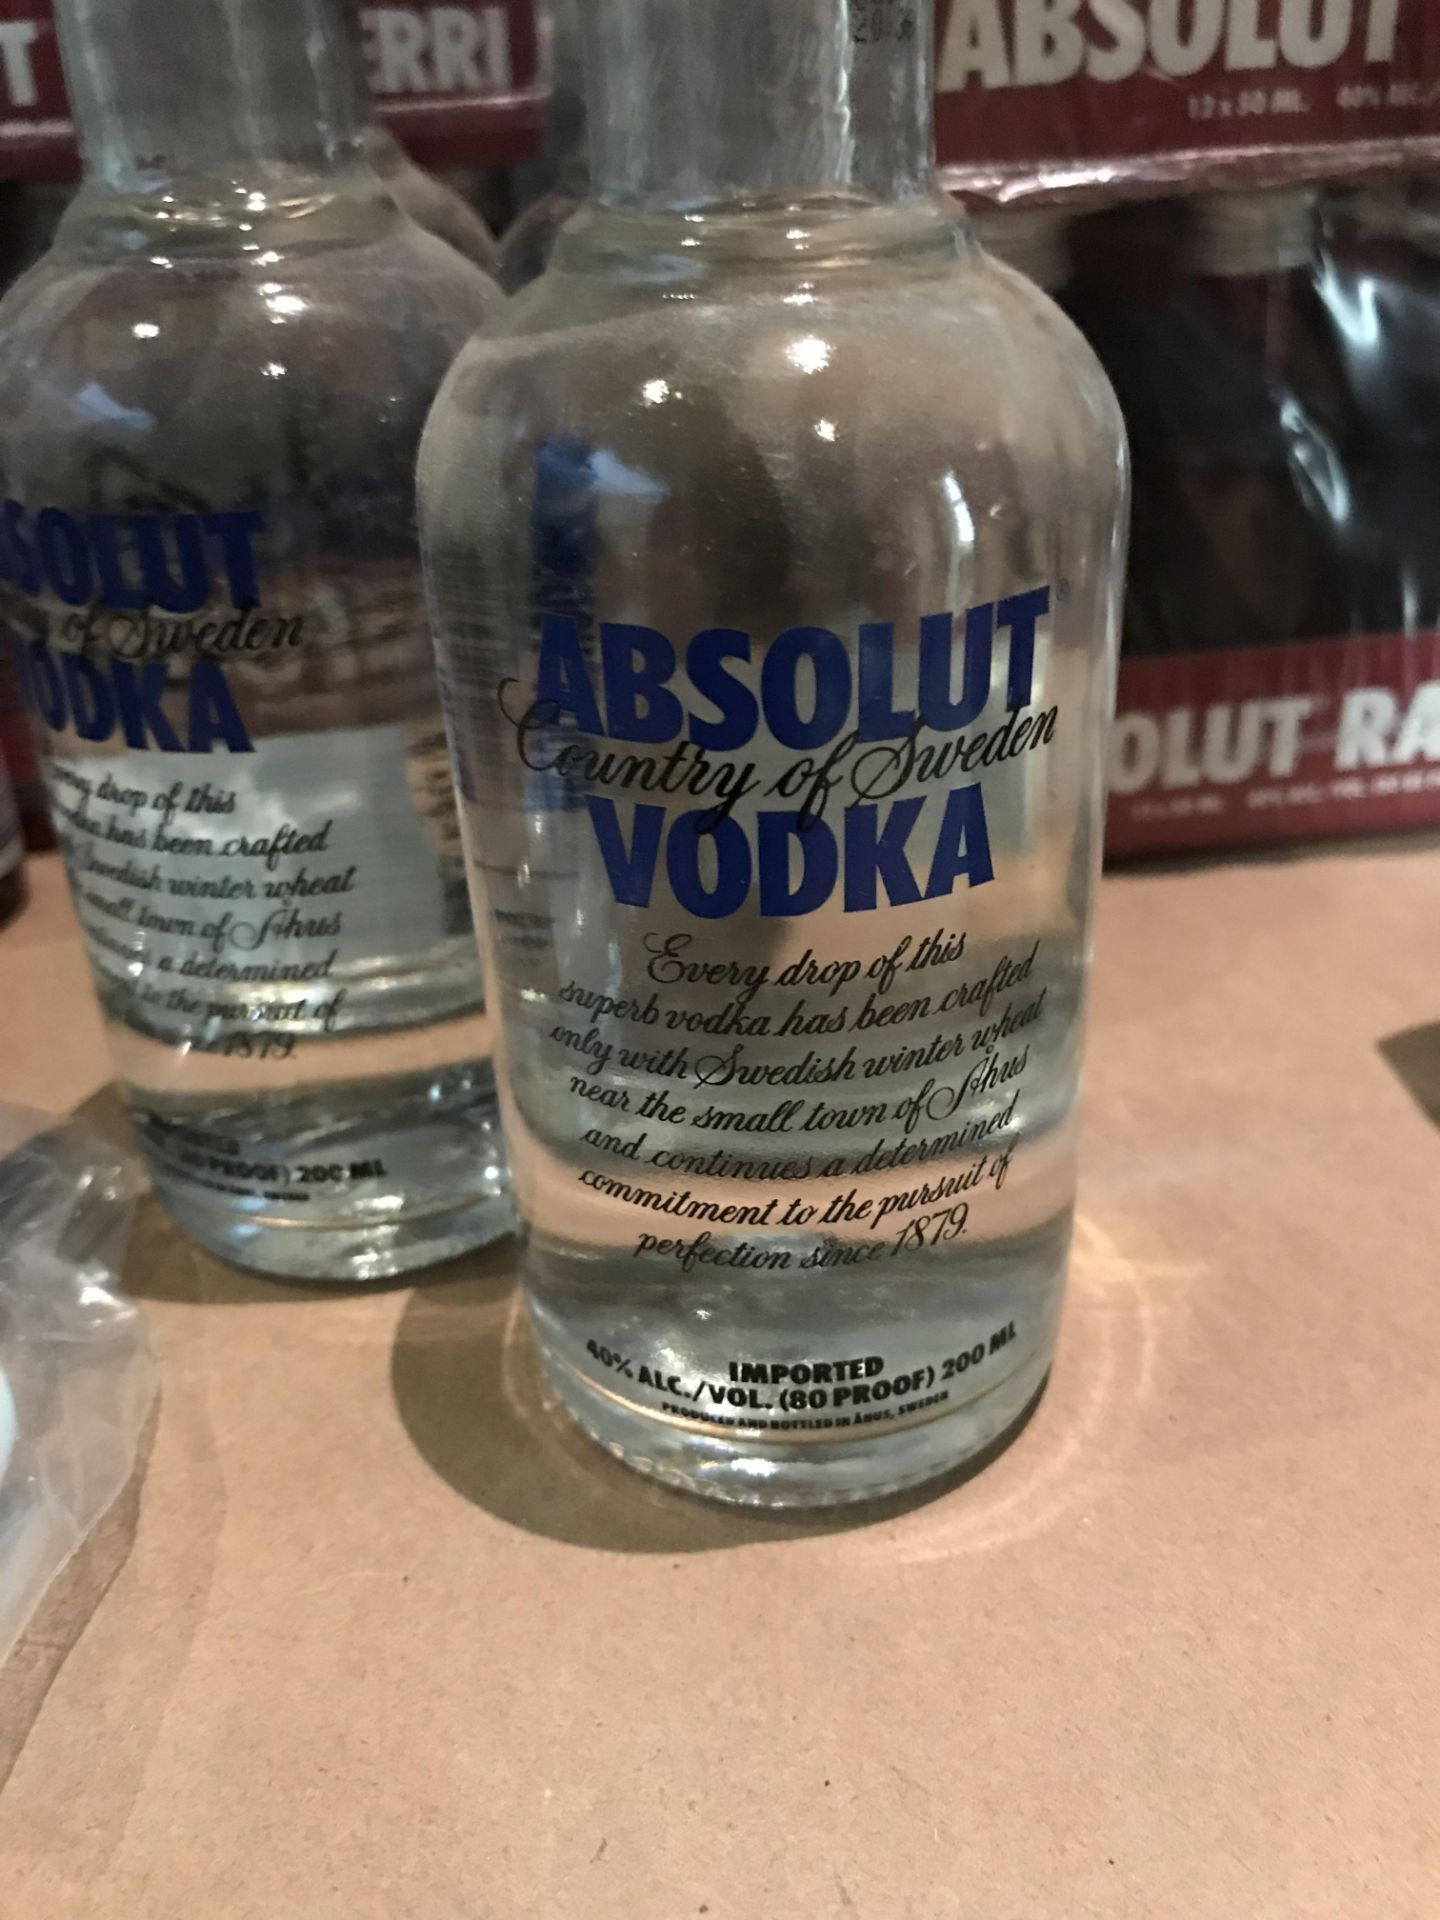 Lot 21 - 115 Bottles of Absolute Vodka 200ml and Absolute Vodka Raspberry